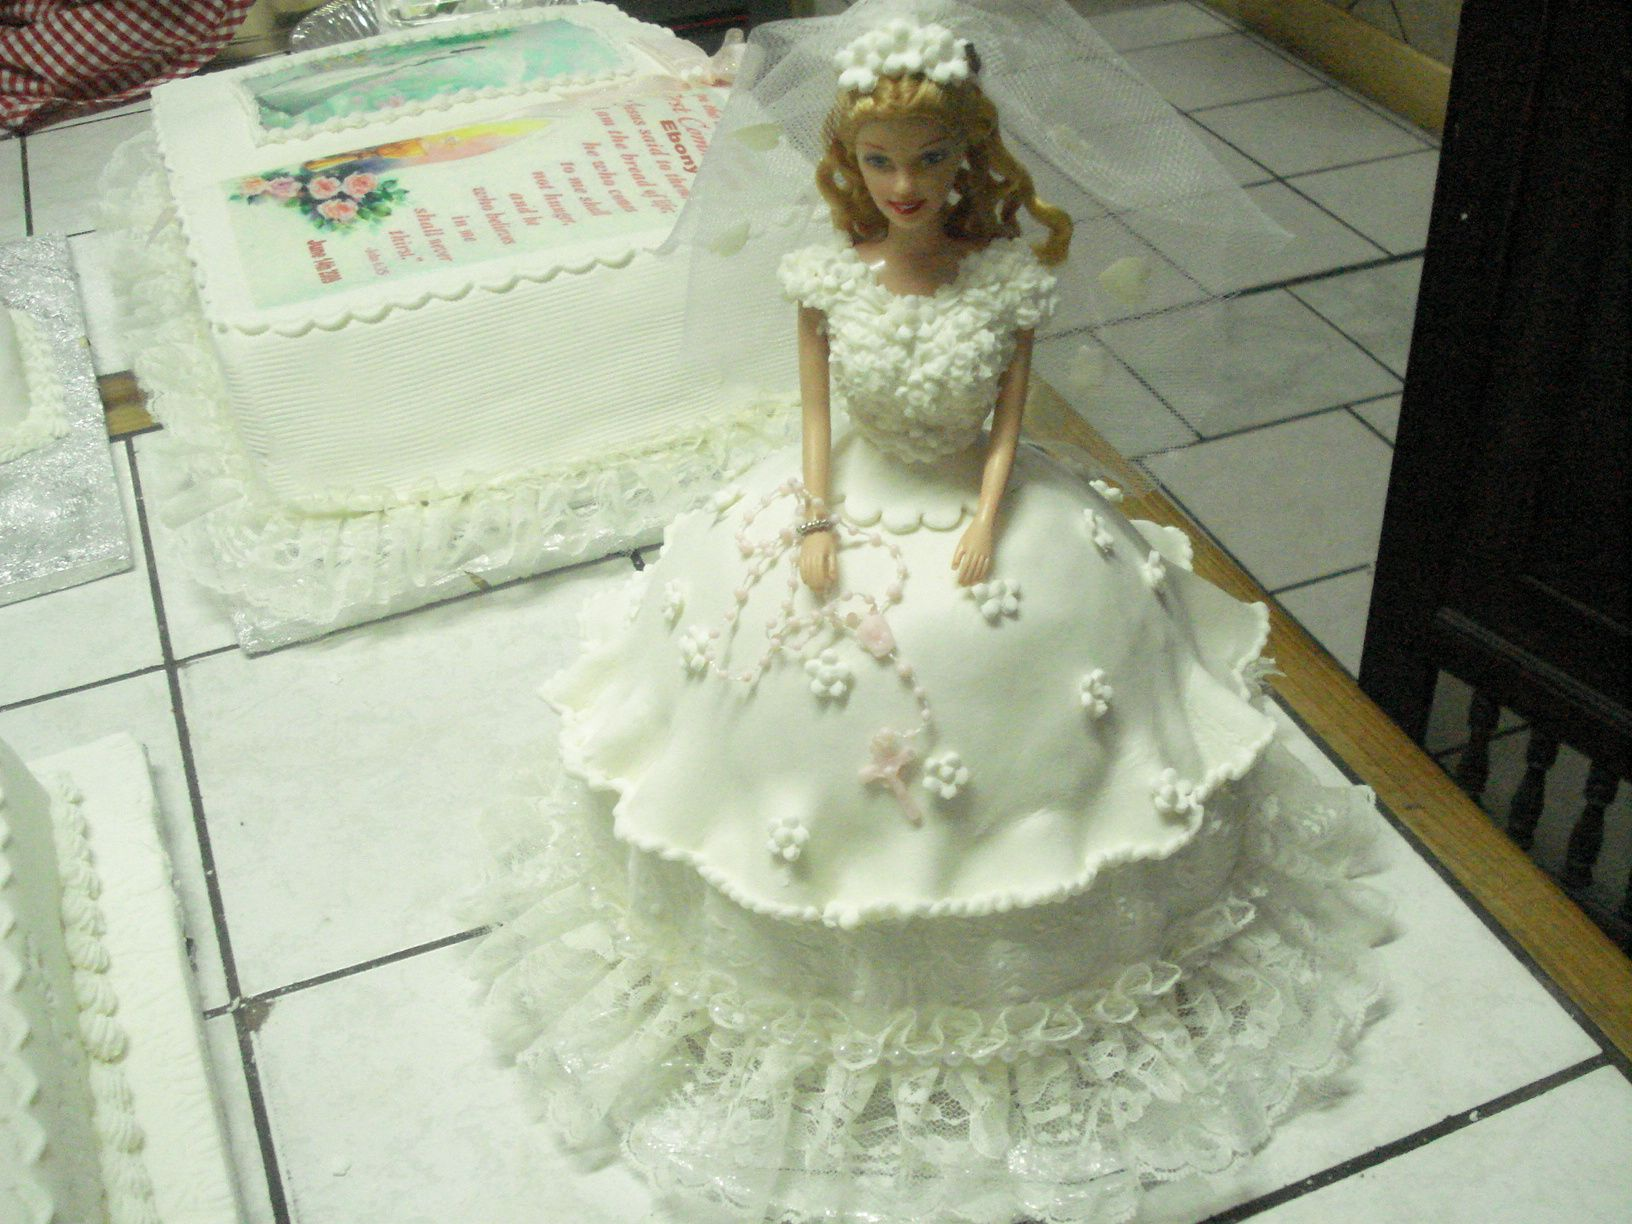 Doll Cake Barbie Doll Cake Pan Used to Make a First Communion Cake